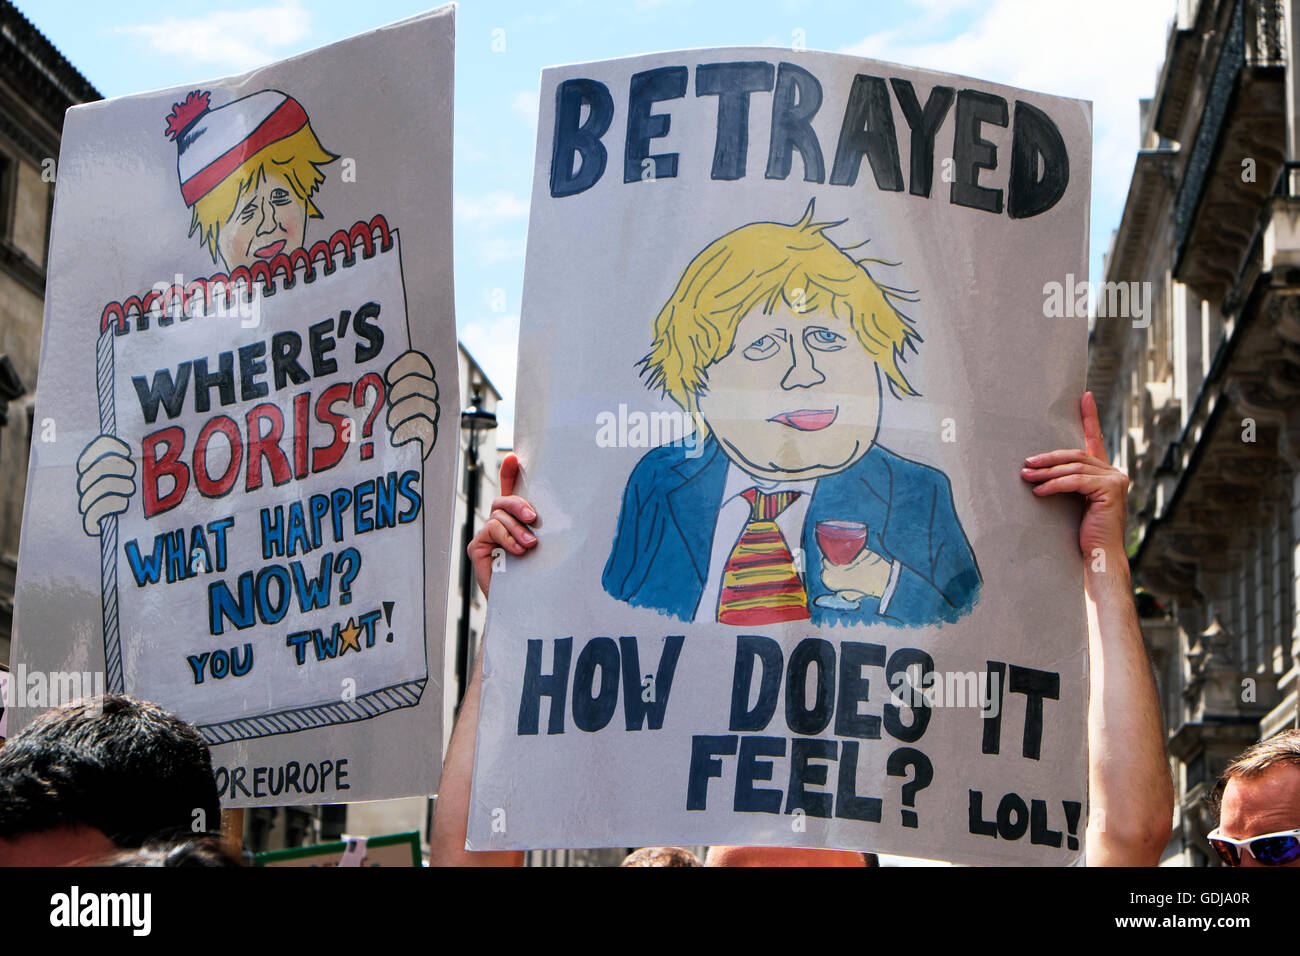 Protesters protestors holding anti Boris Johnson posters at Brexit referendum  'March for Europe'  demonstration - Stock Image